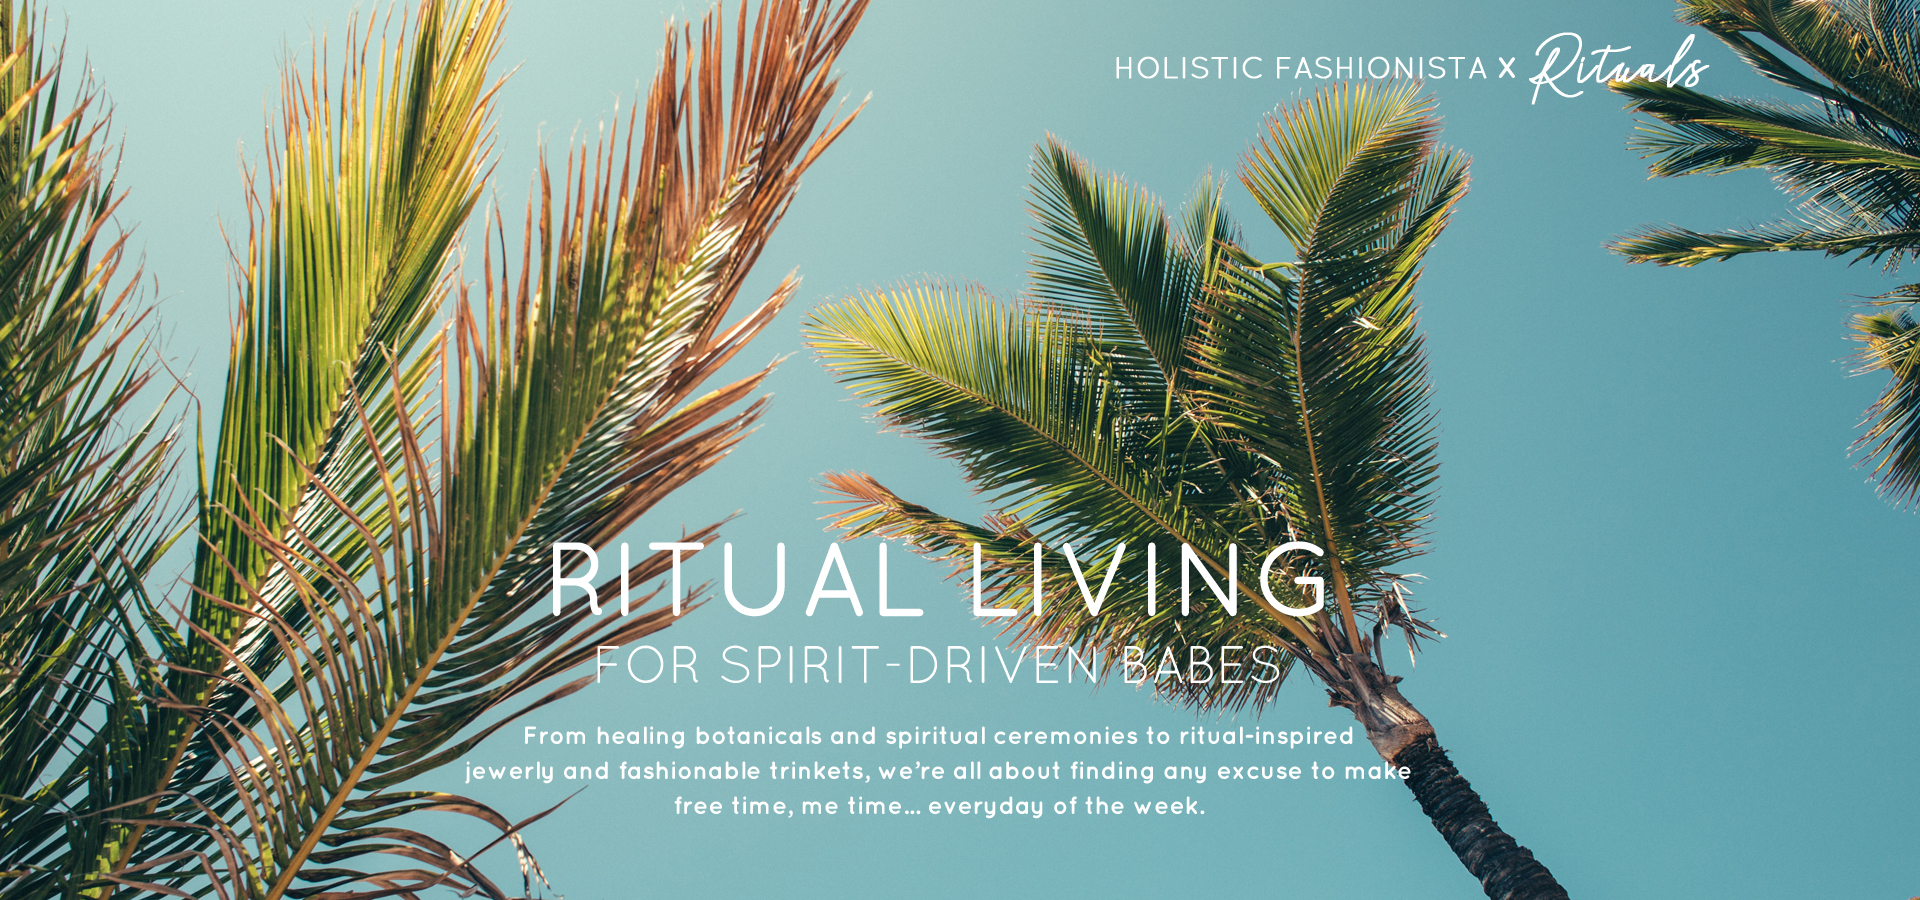 Ritual Living for Spirt-Driven Babes